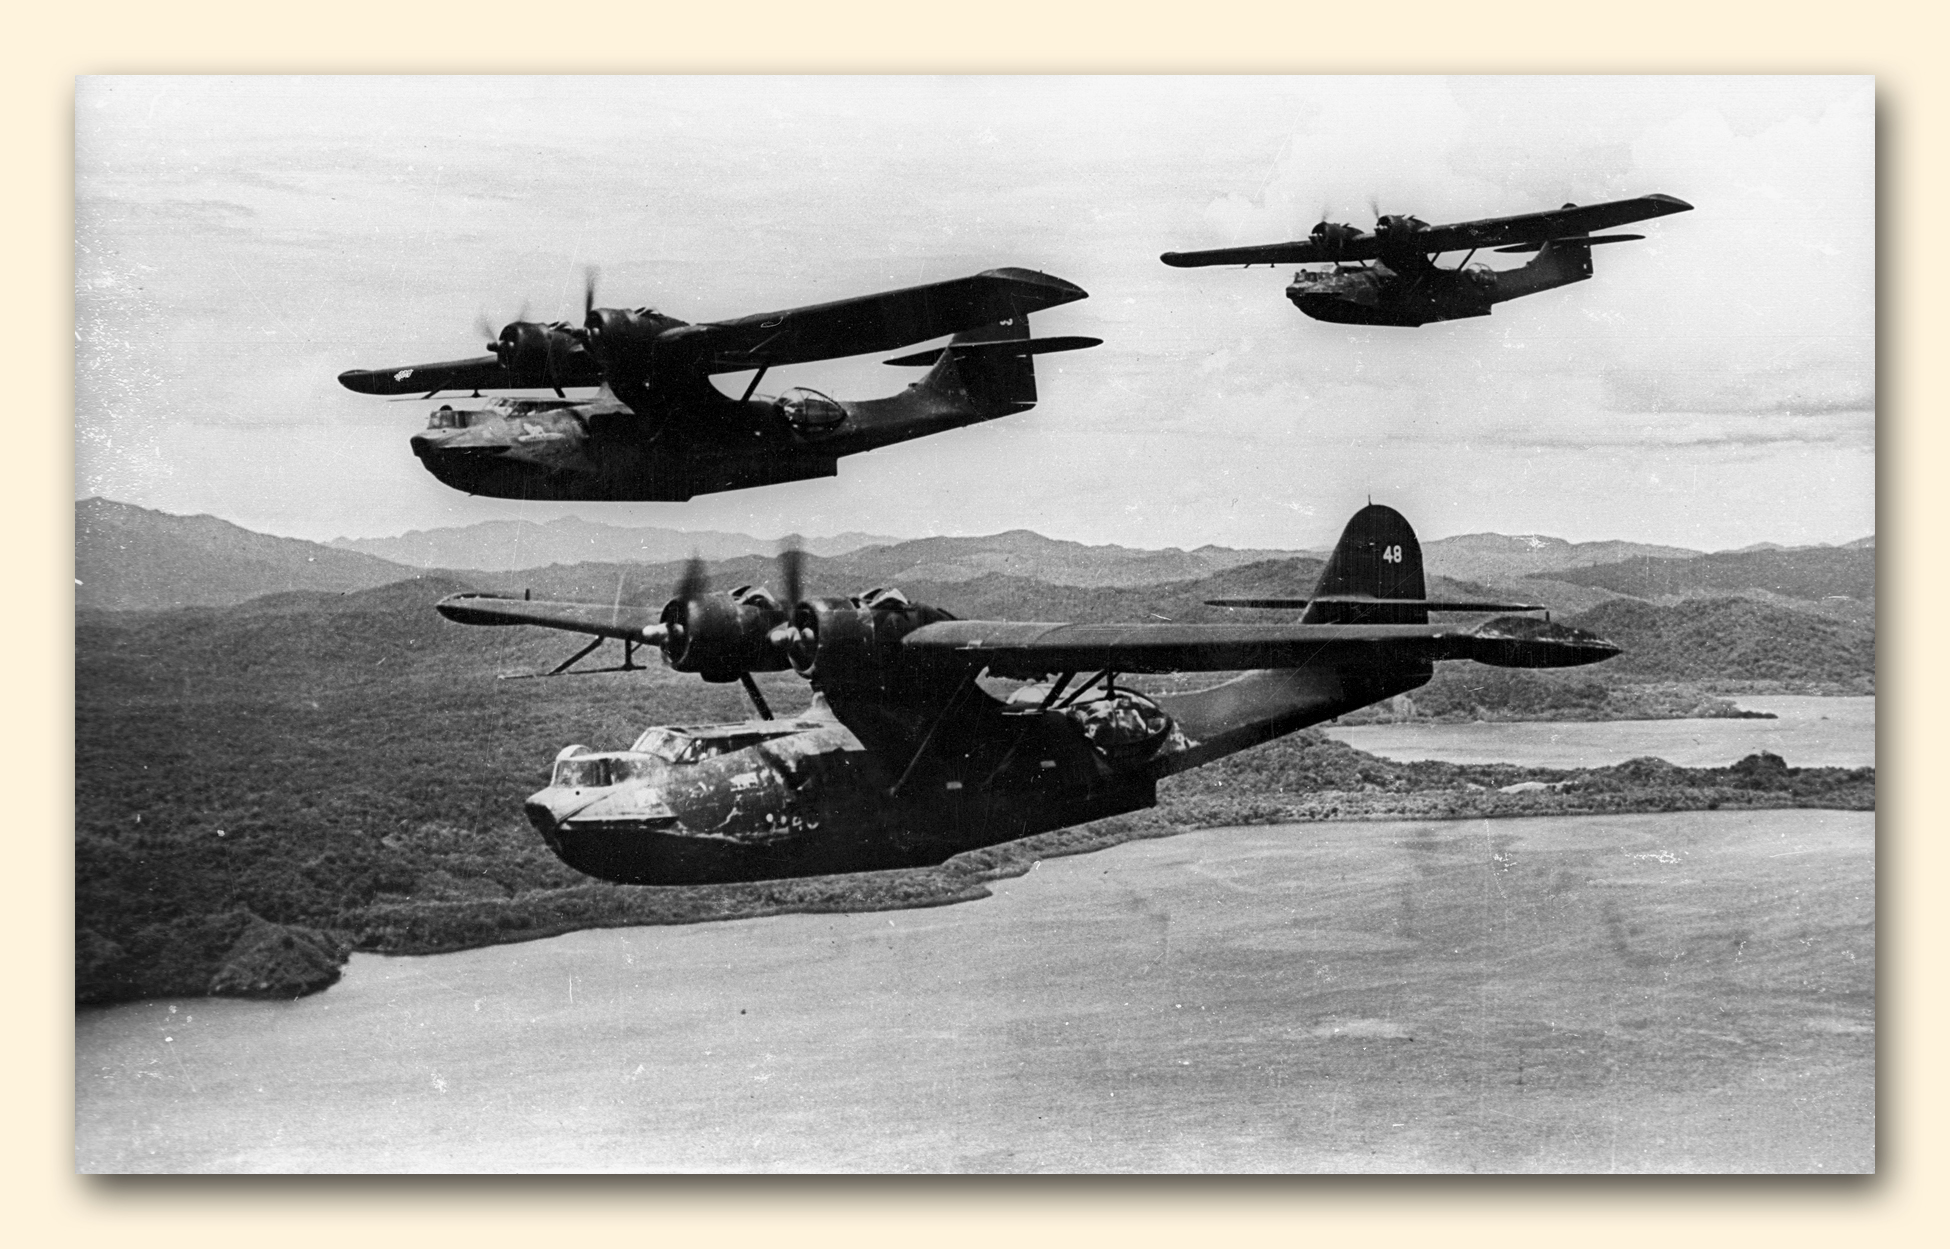 PBY-5A_VP-52_Black_Cat_Dec_1943_v1